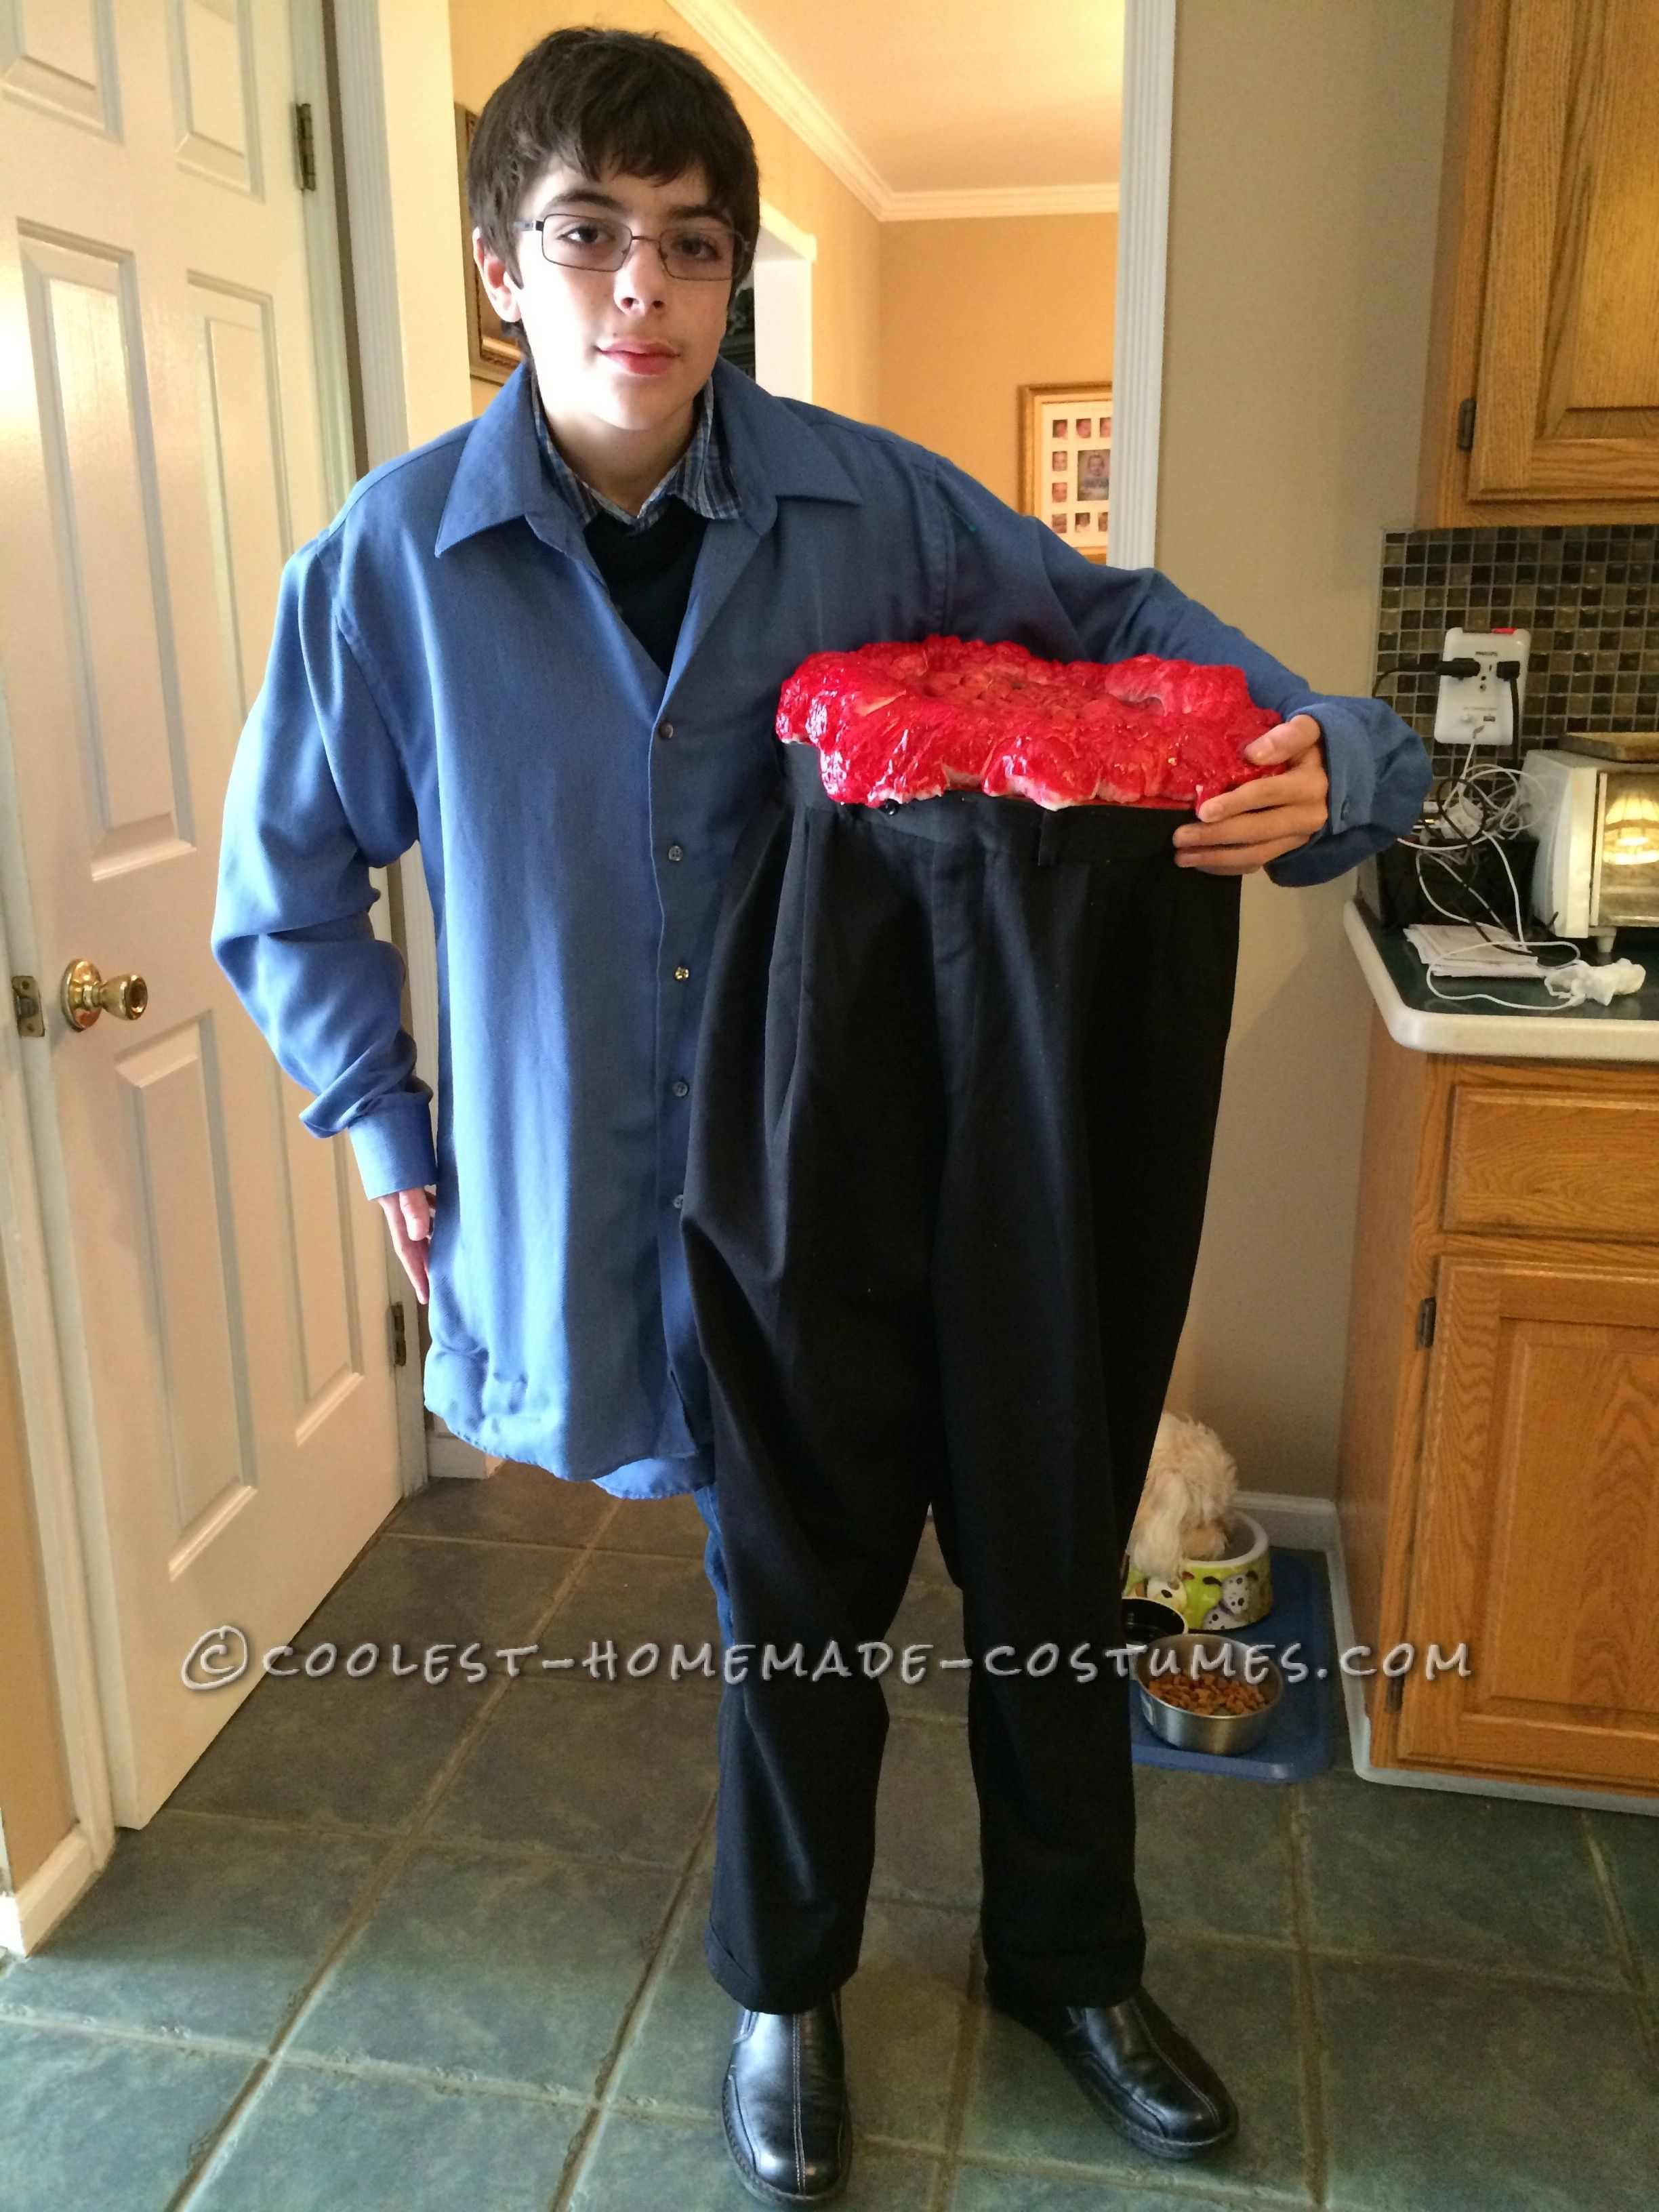 cool illusion costume: half the man i used to be! | coolest homemade